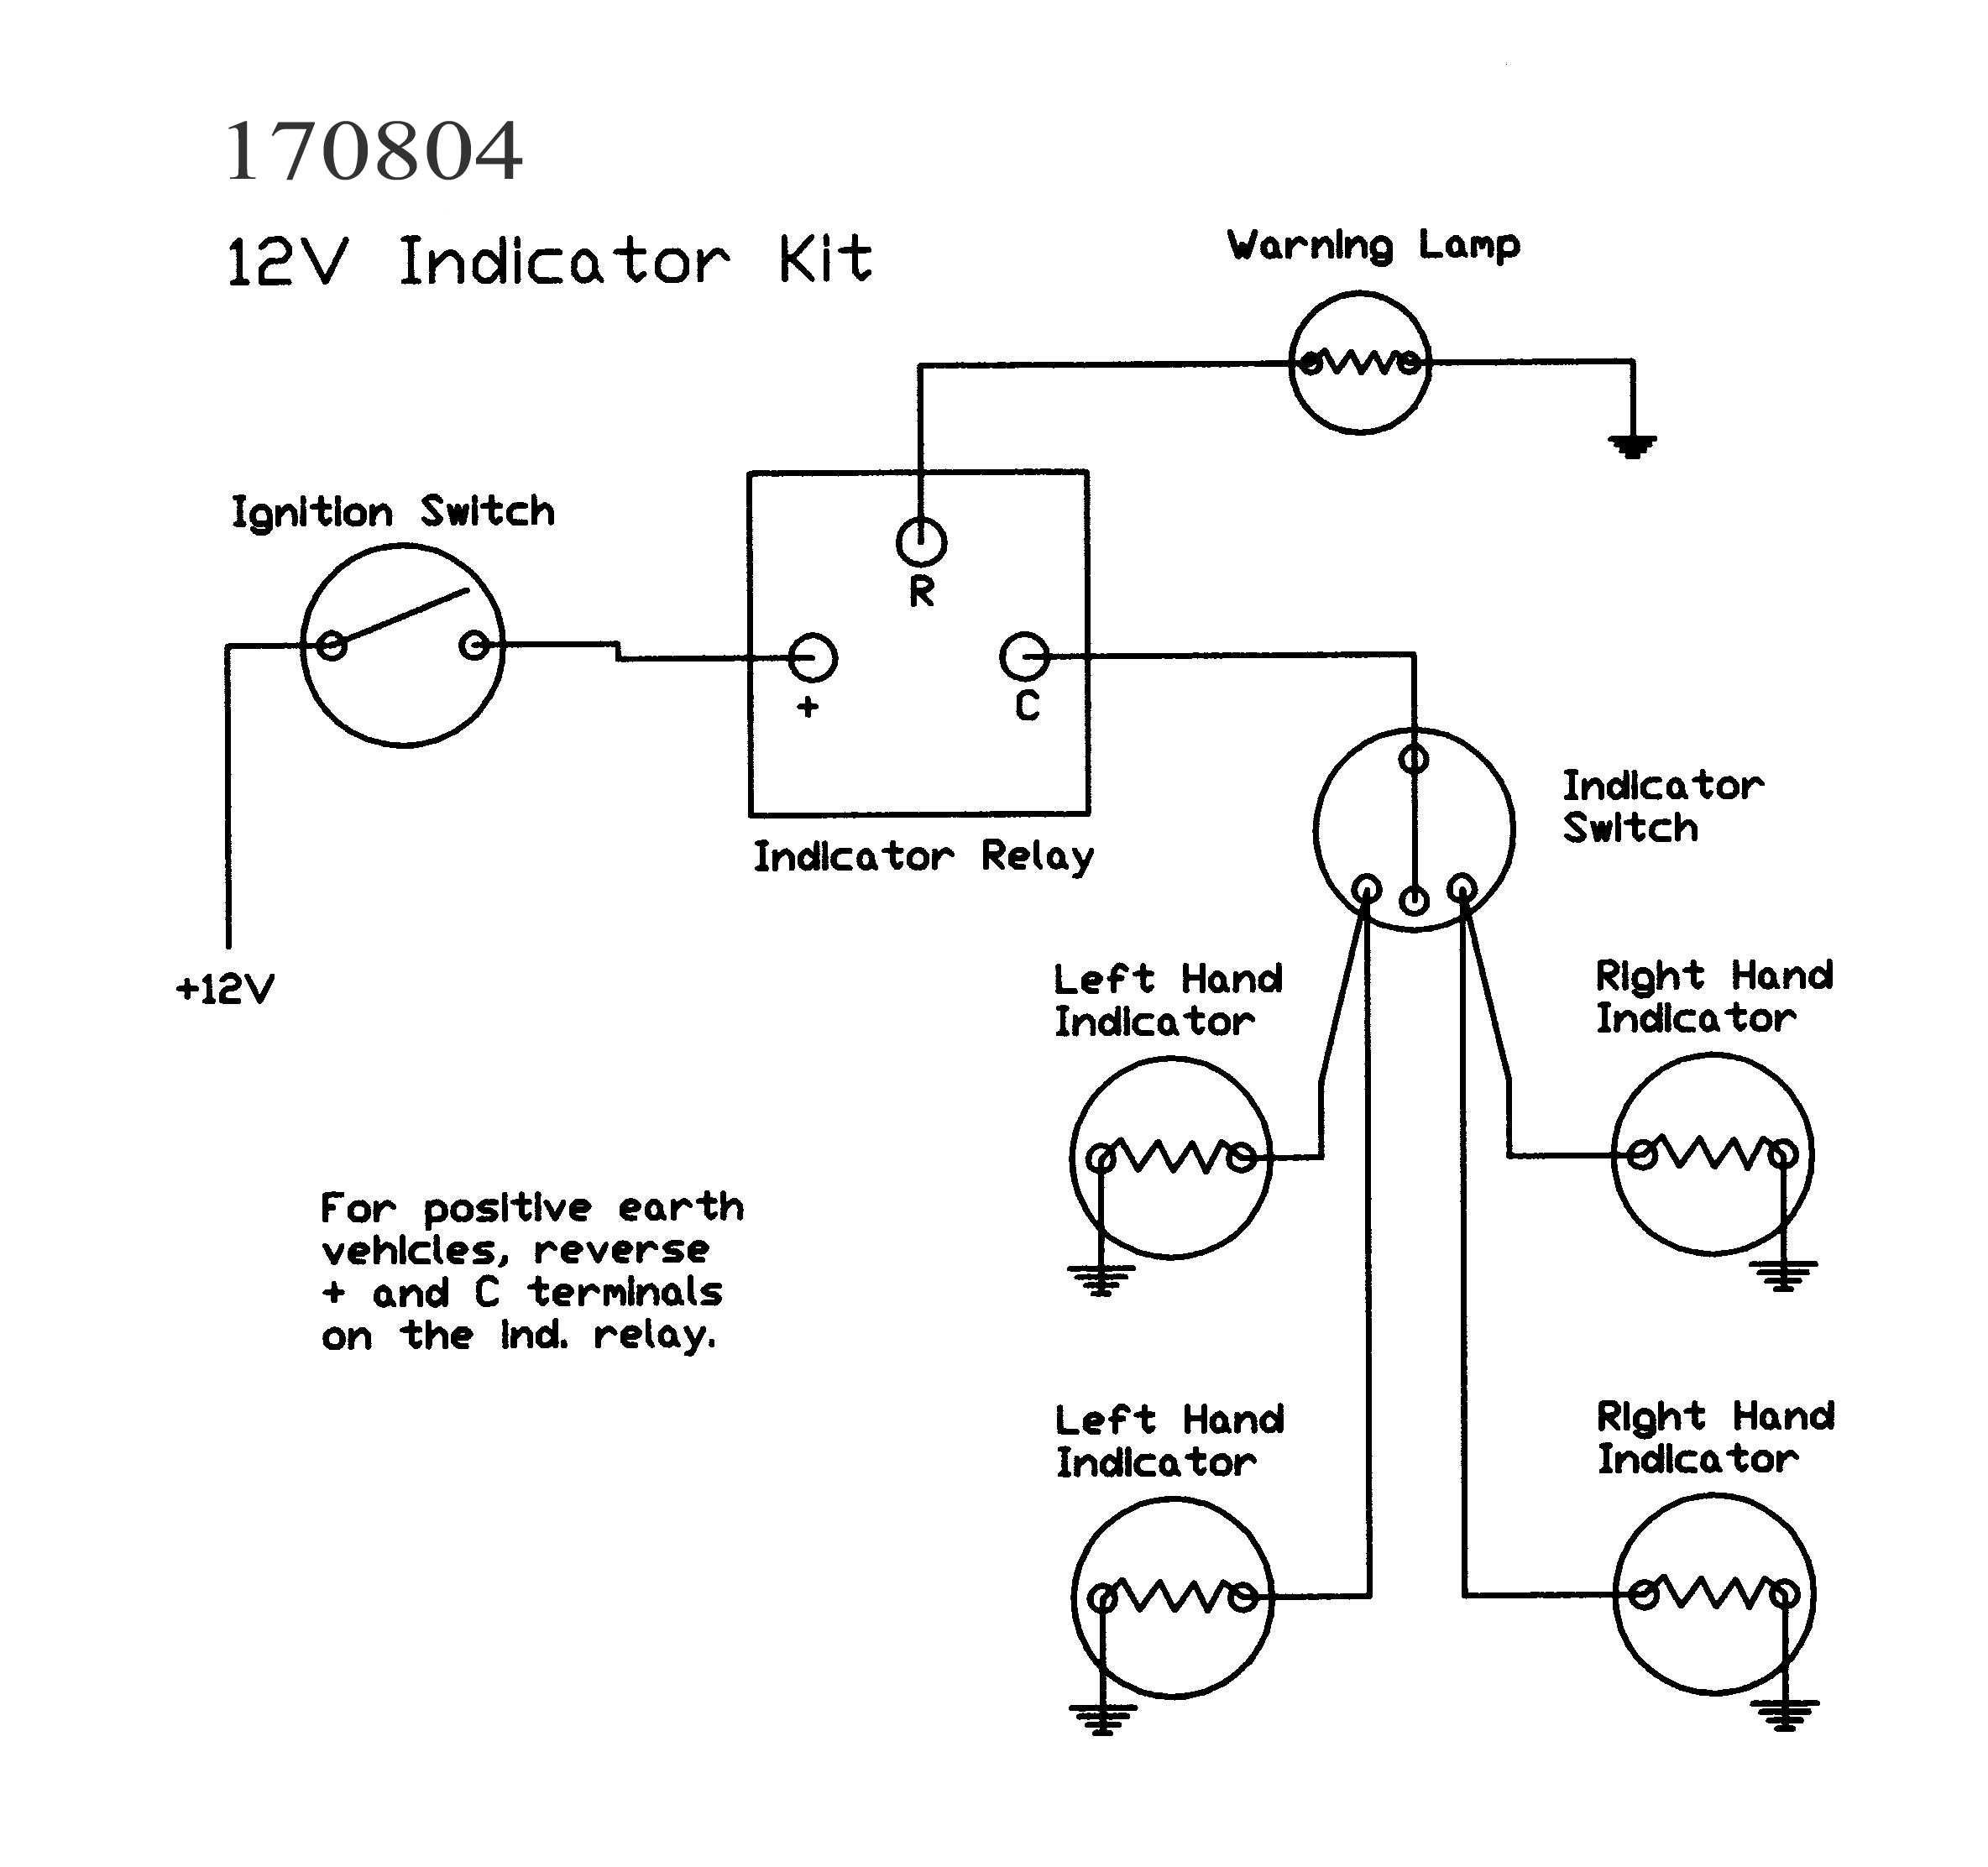 Indicator Kits Without Lamps Wiring Circuit Lighting 170803 170804 12v Schematic